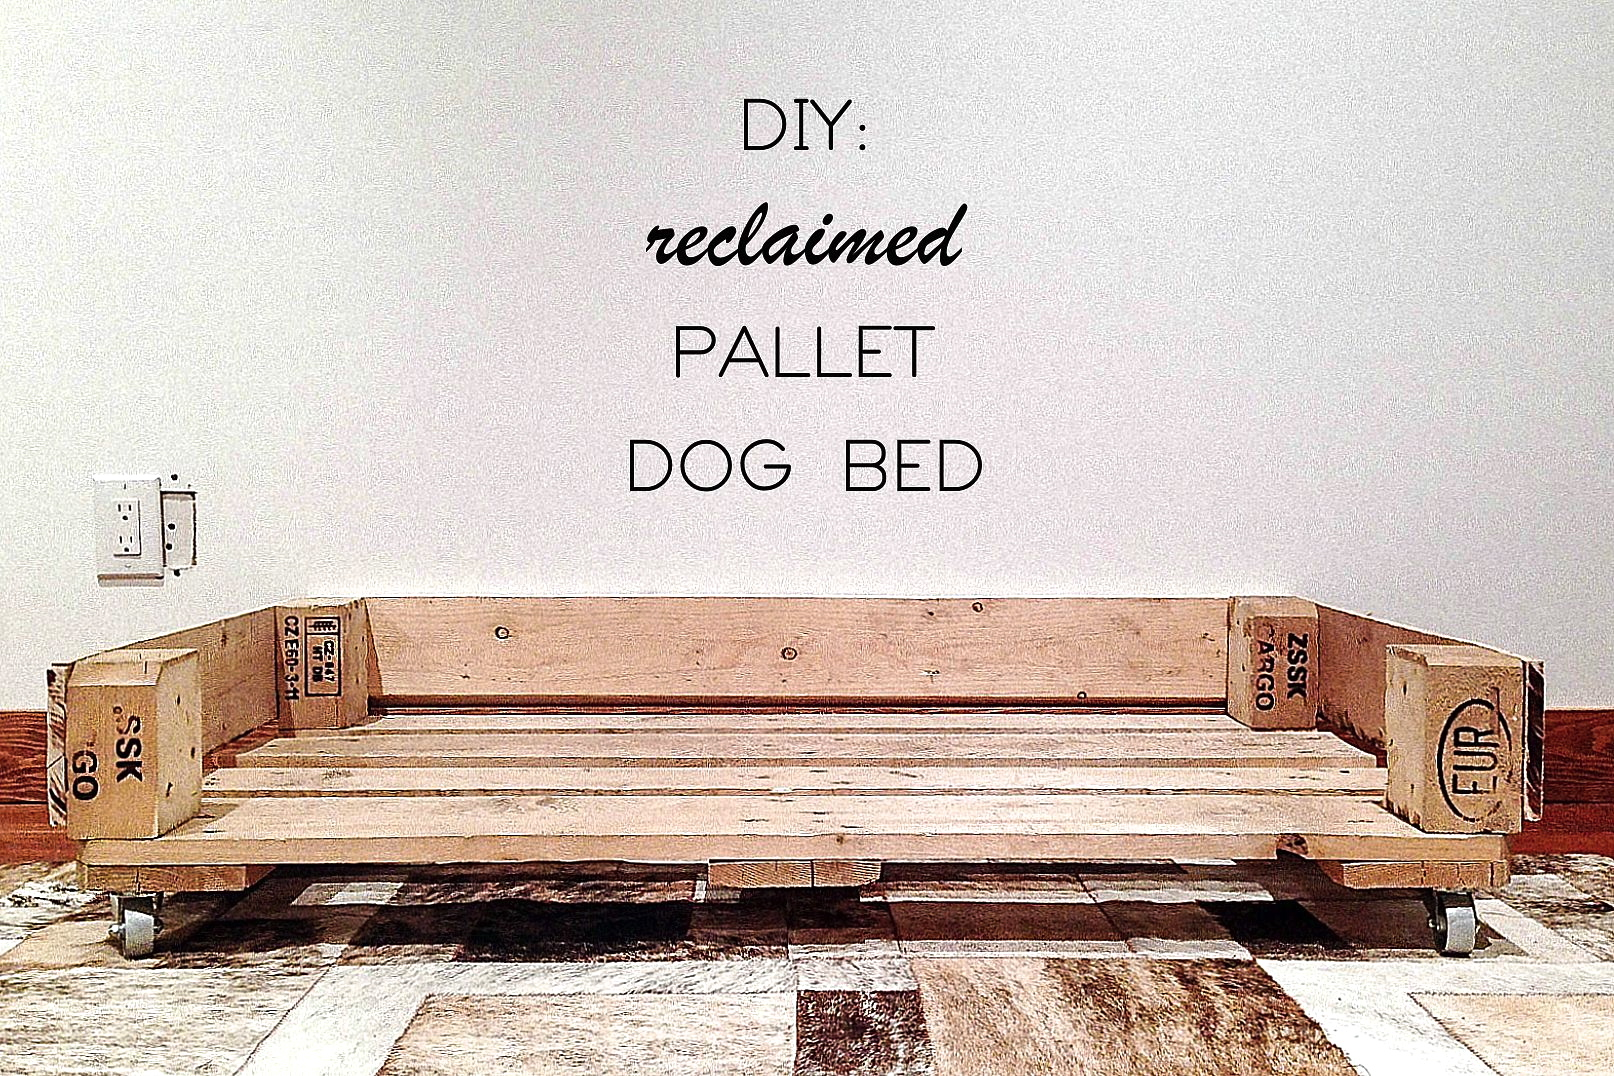 Make this wood pallet dog bed hello scarlett blog for Build a dog bed